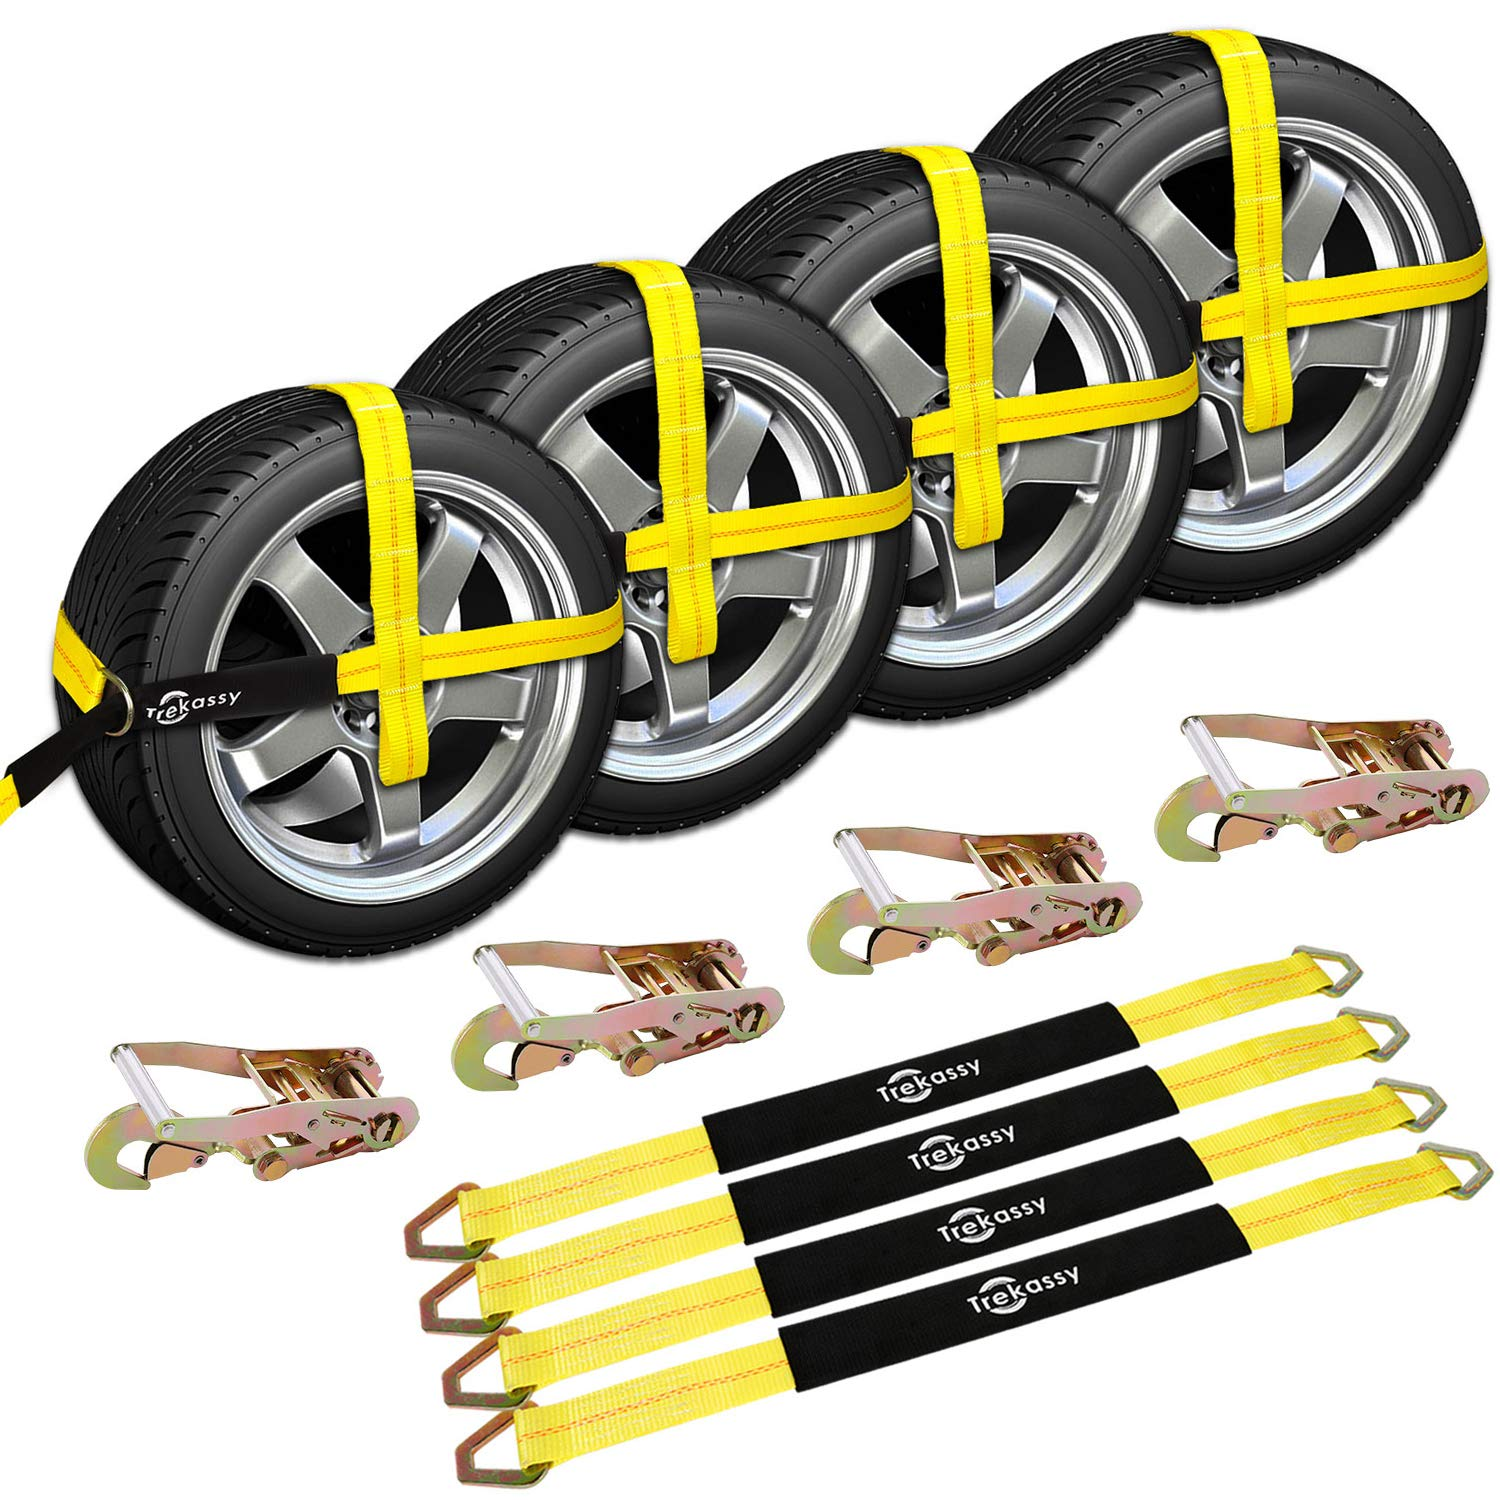 Trekassy Wheel Net Car Hauler Tie Down Straps for Trailers Heavy Duty 4 Pack with 4 Axle Straps and 4 Ratchet with Snap Hooks by Trekassy